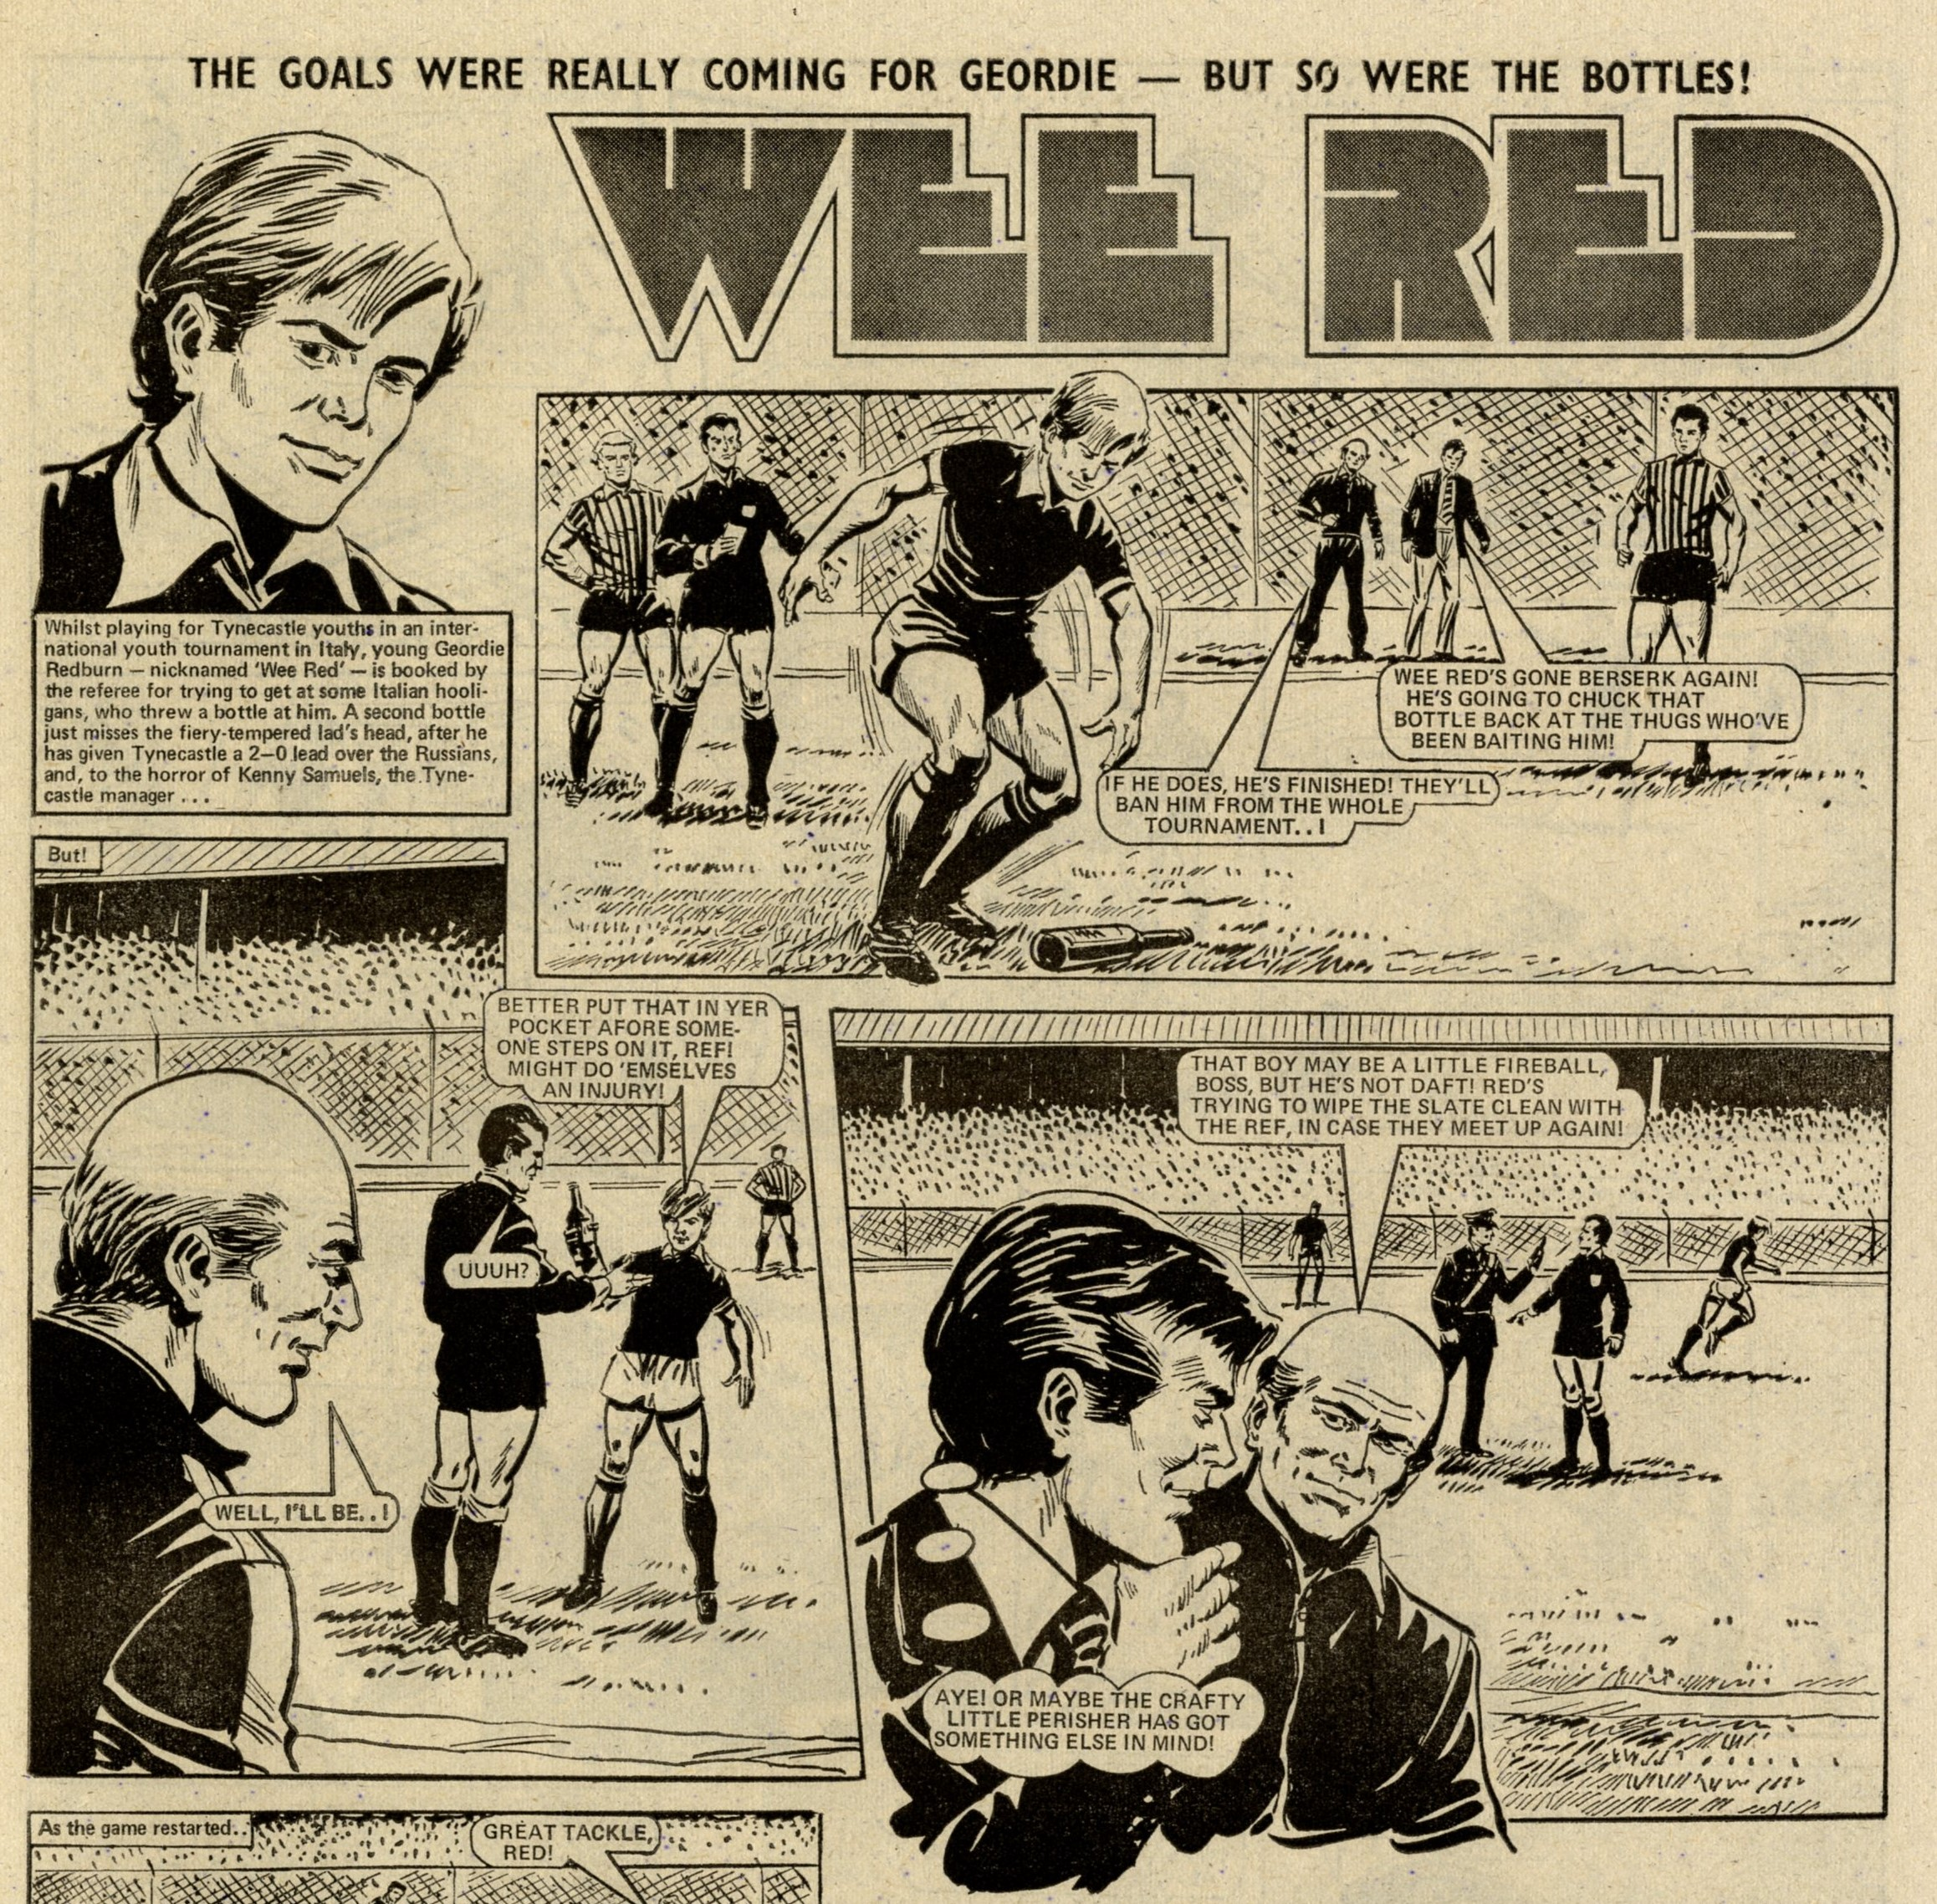 Wee Red: creators unknown